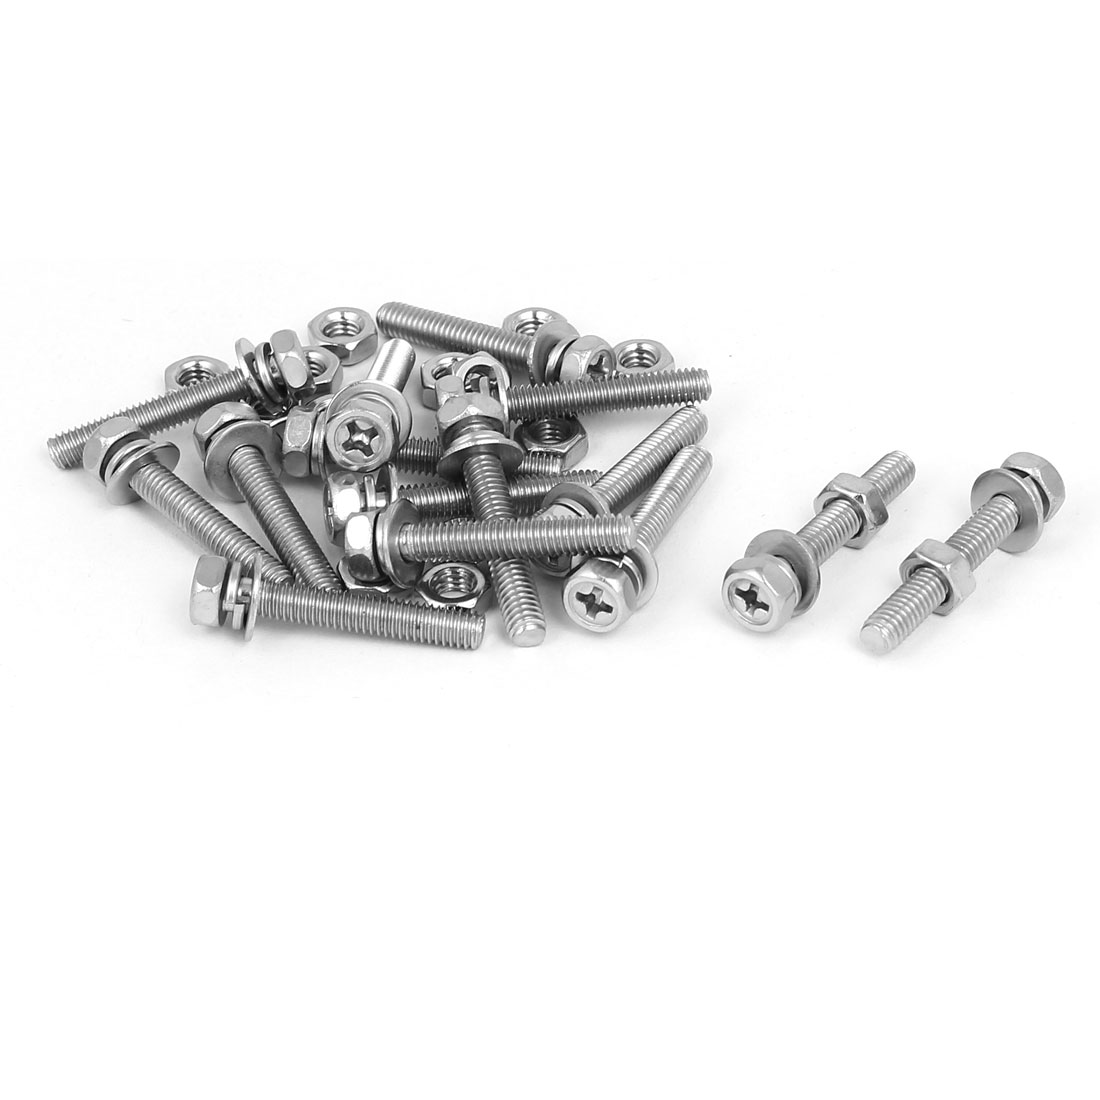 M4 x 25mm 304 Stainless Steel Phillips Hex Head Bolts Nuts w Washers 15 Sets